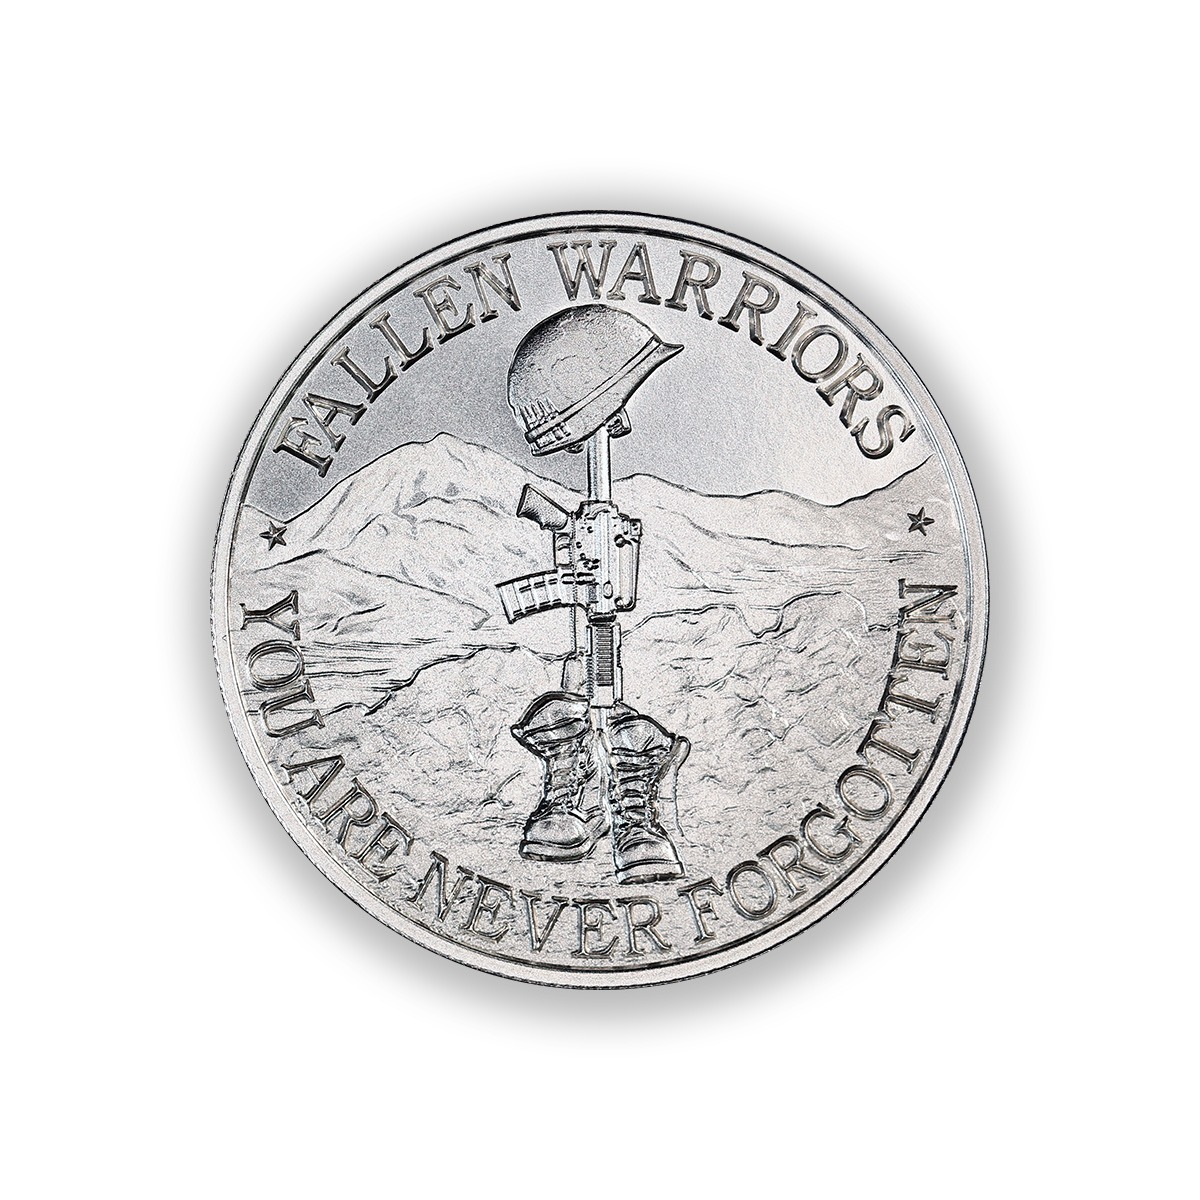 BATTLEFIELD CROSS – 2 TROY OUNCE – 39MM